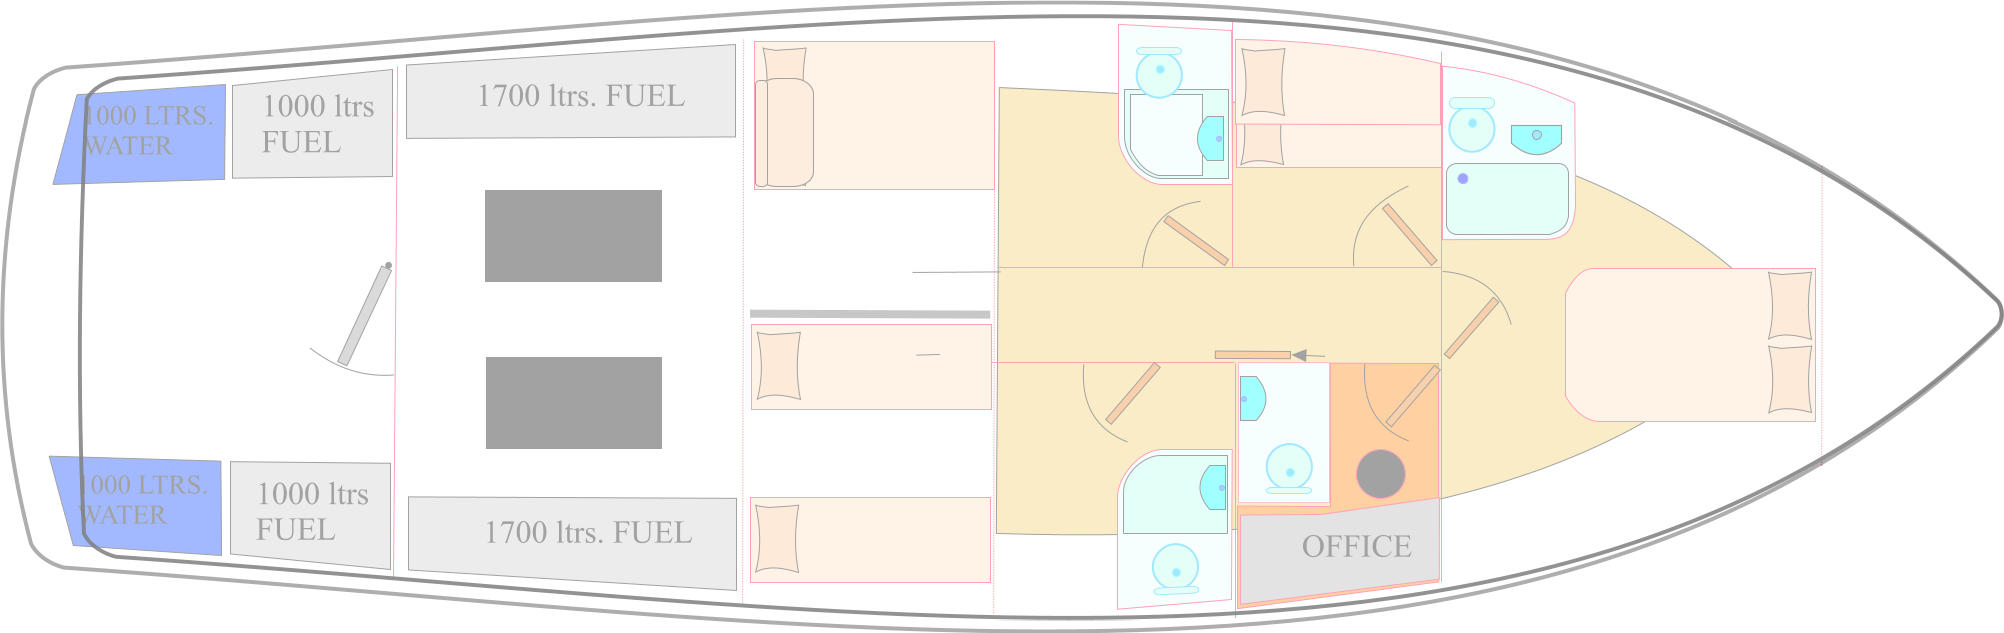 lower deck layout 1